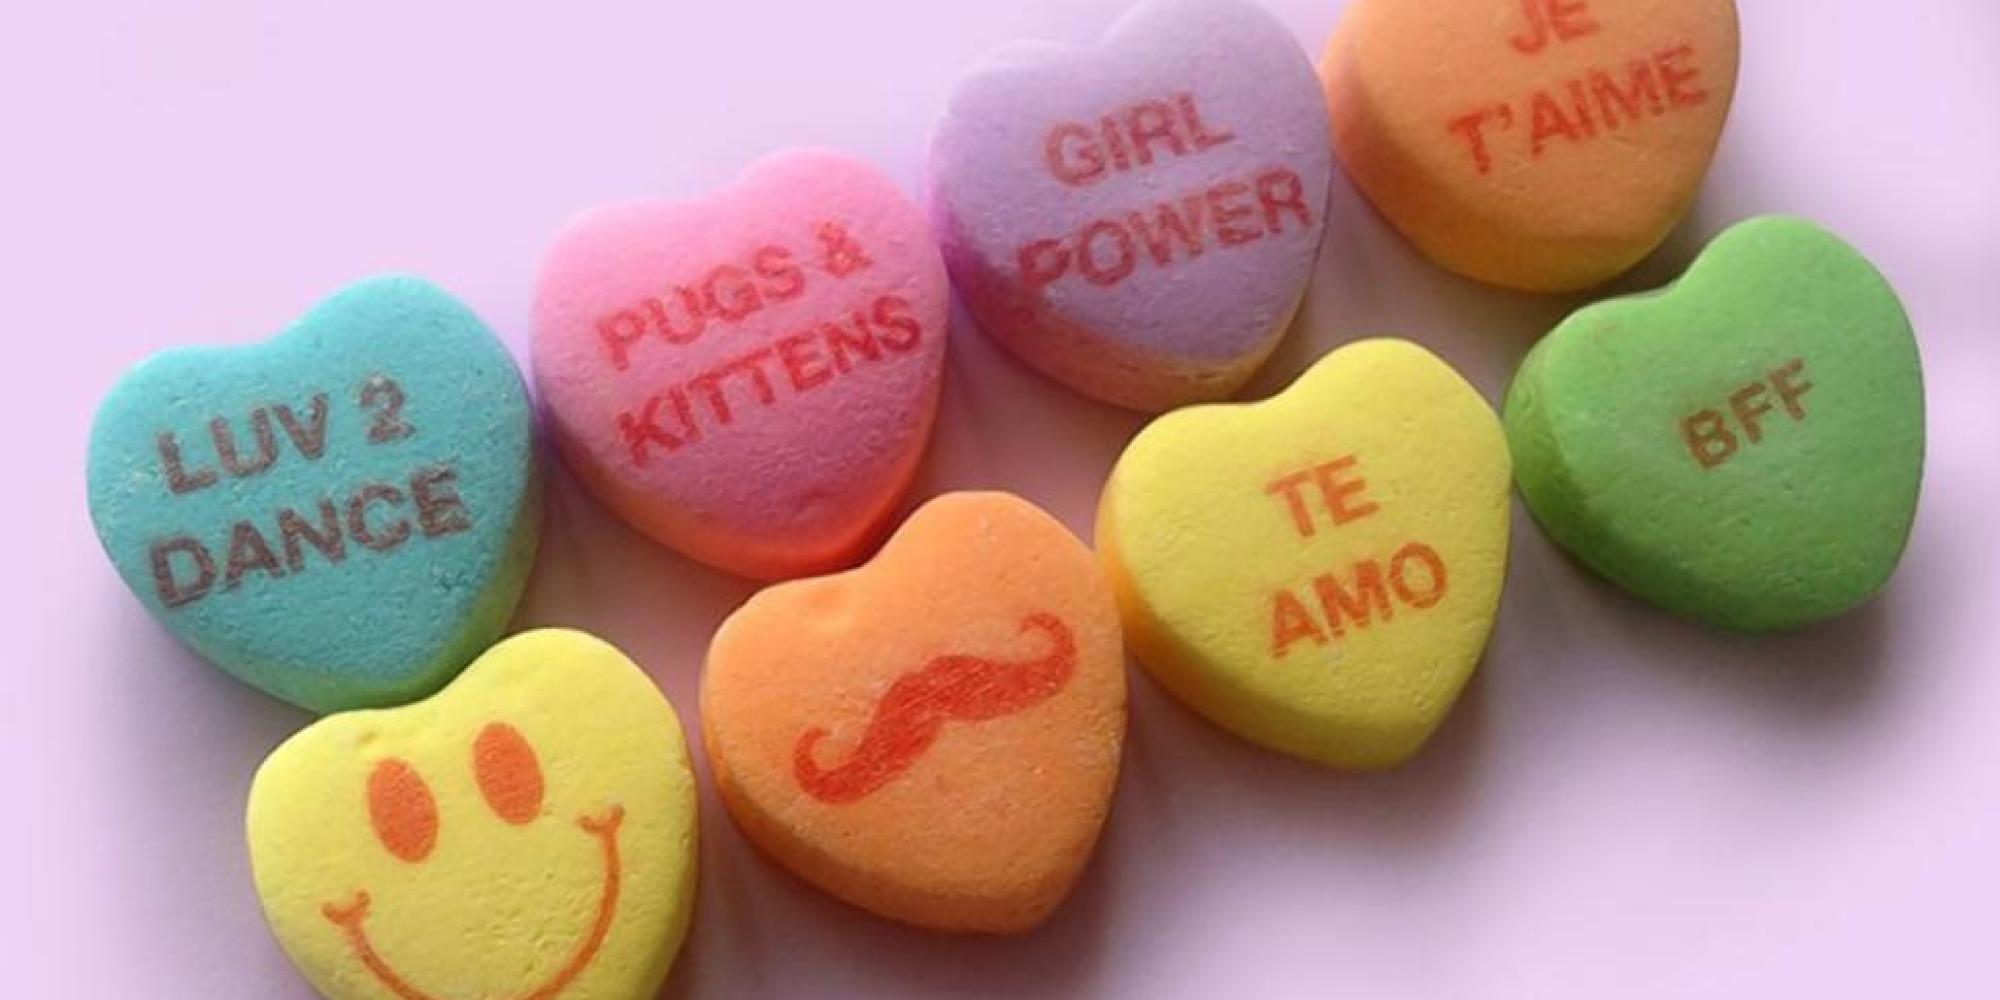 New Candy Hearts Are A Sign Of Our Crumbling Civilization